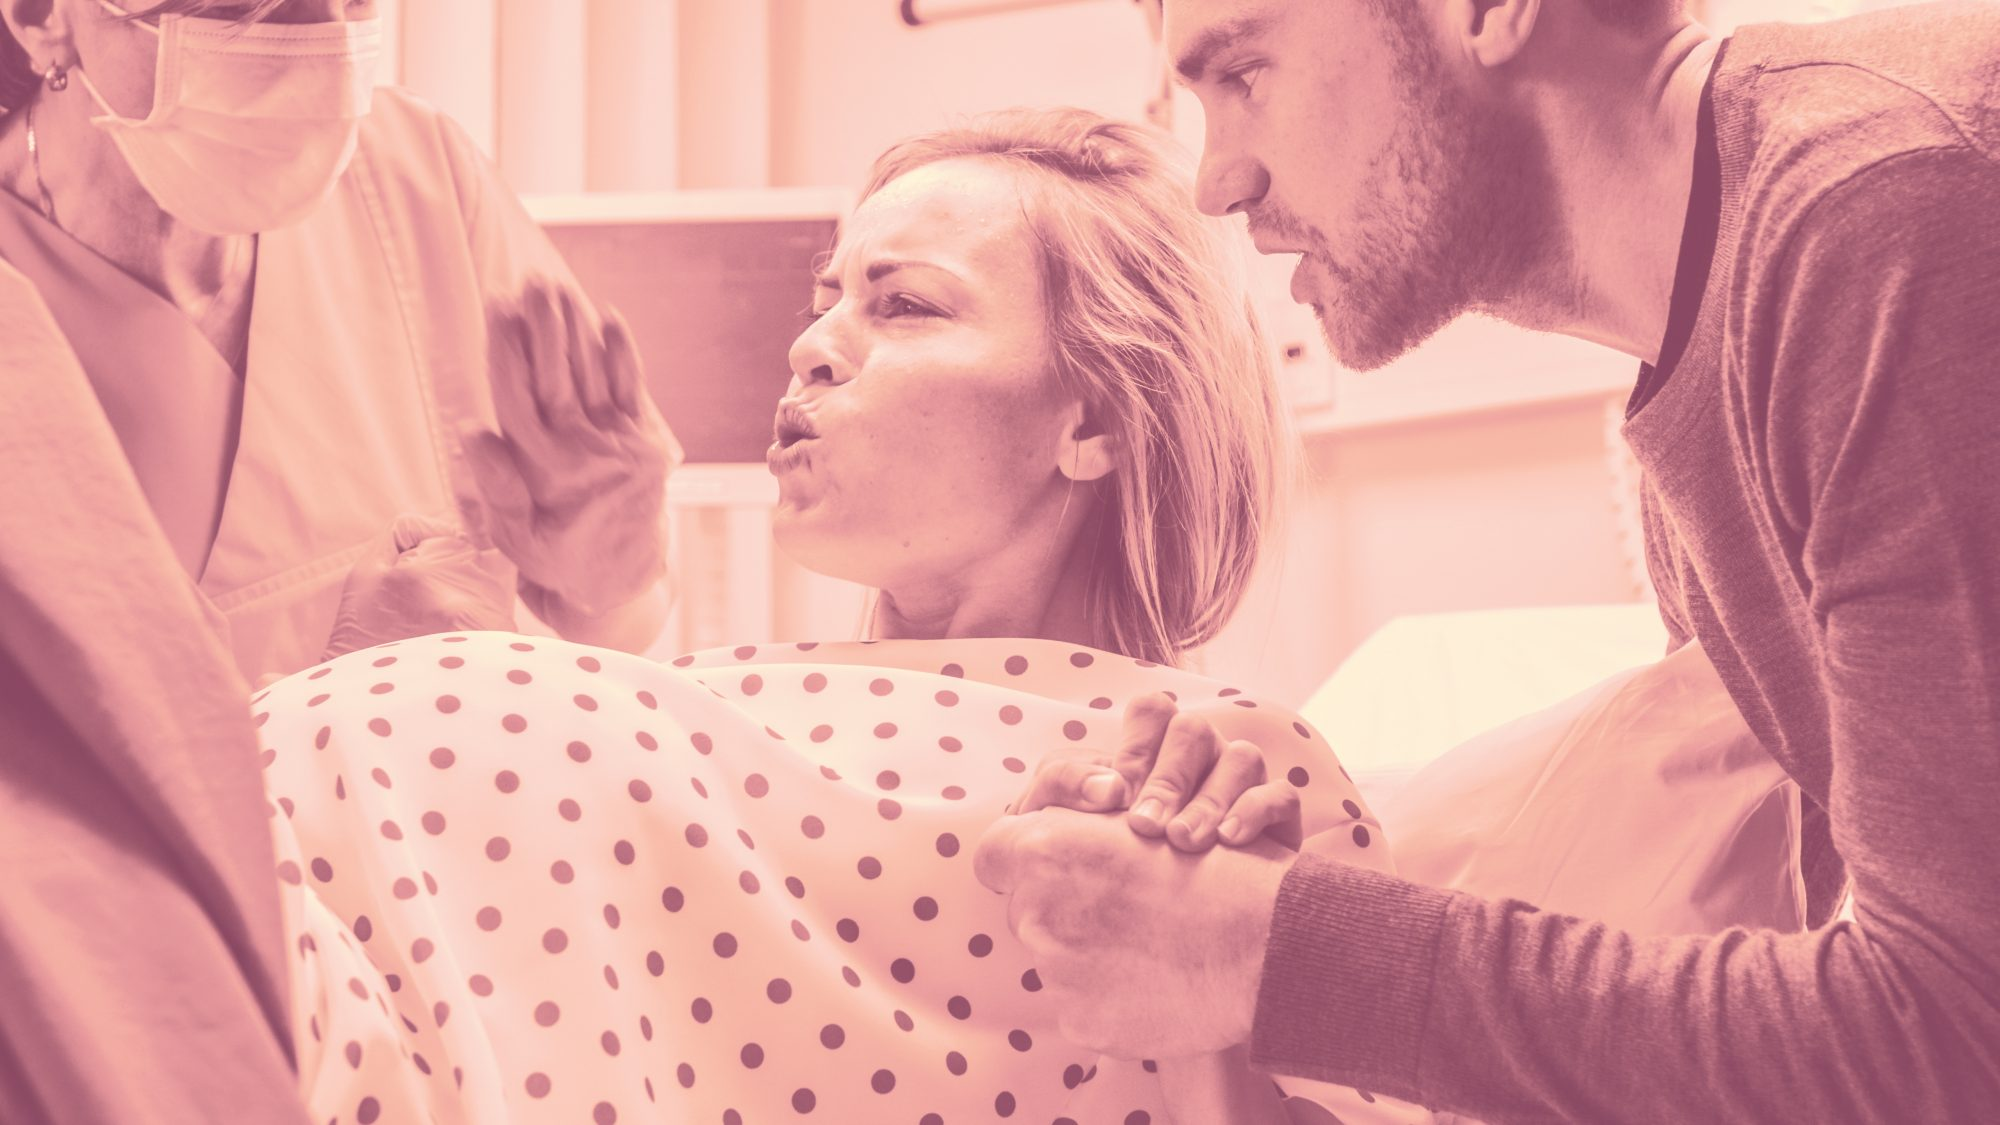 d6d4dbad698e5 Emotional Photo Shows Mom Touching Her Baby's Head During Birth - Health